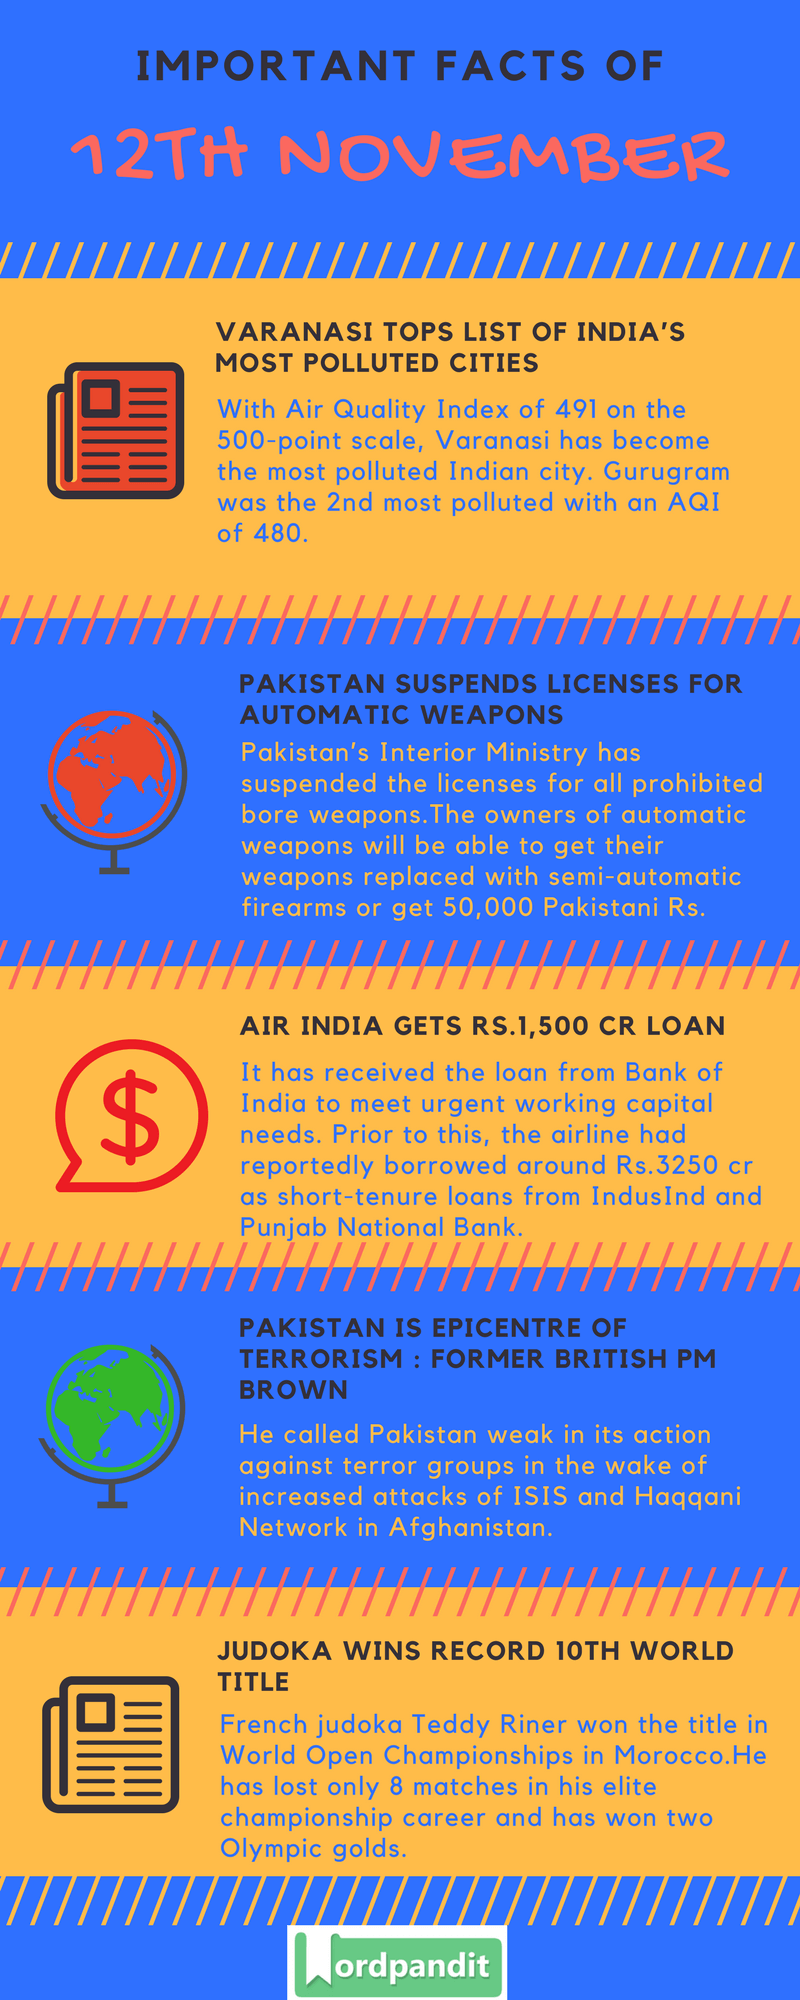 Daily-Current-Affairs-12-november-2017-Current-Affairs-Quiz-november-12-2017-Current-Affairs-Infographic